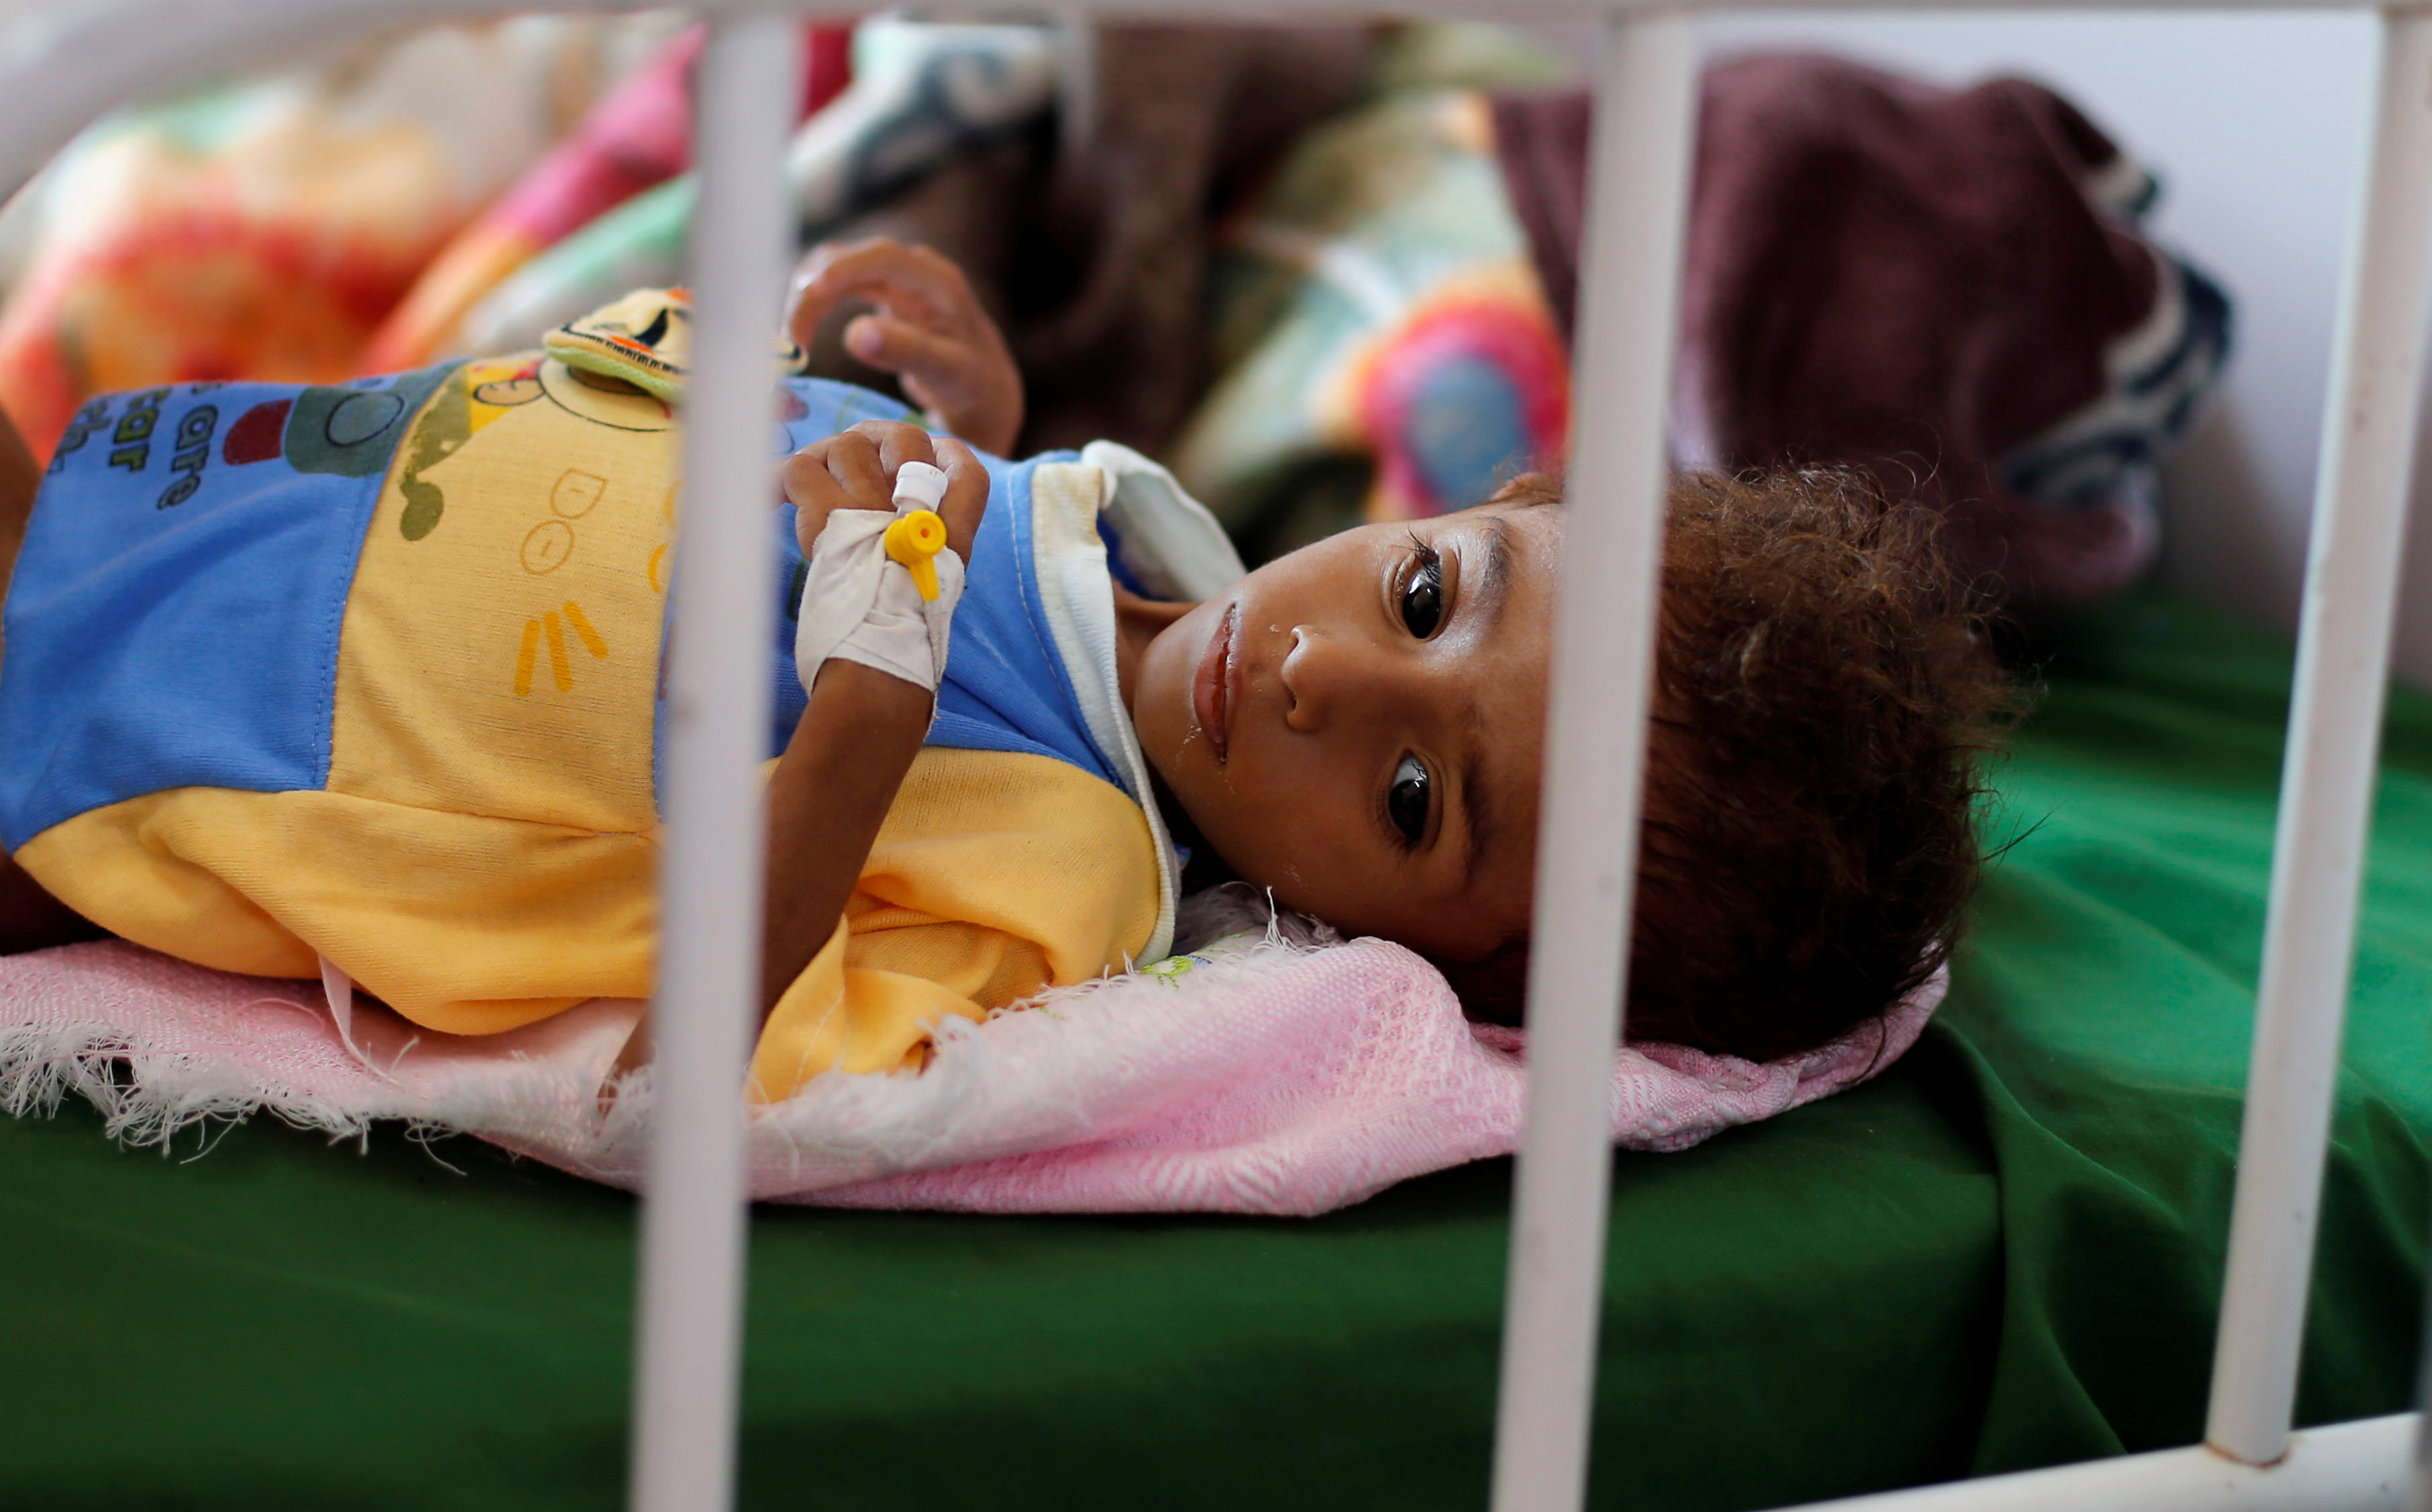 A malnourished boy lies on a bed at a malnutrition treatment center in Sanaa, Yemen October 7, 2018. REUTERS/Khaled Abdullah